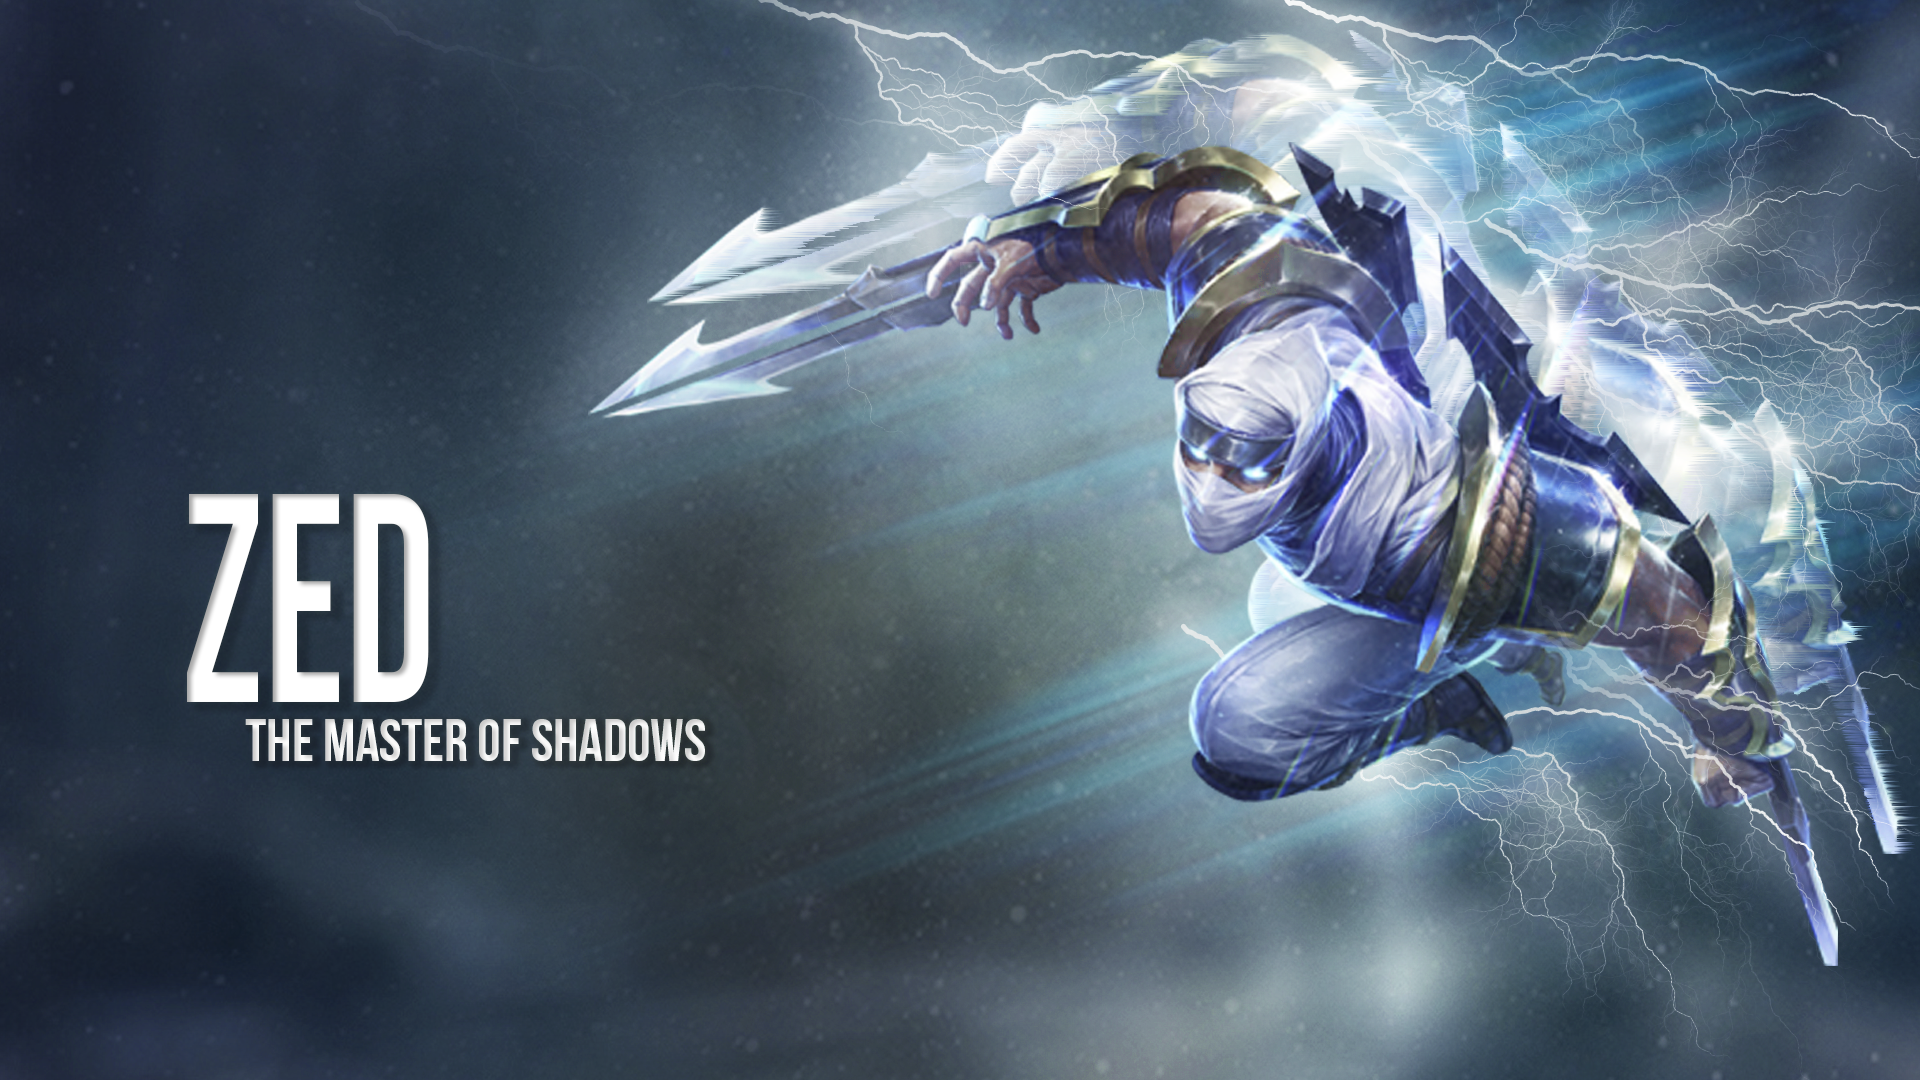 Zed The Master Of Shadows Png - . Hdpng.com Zed, The Master Of Shadows By Lenona, Transparent background PNG HD thumbnail